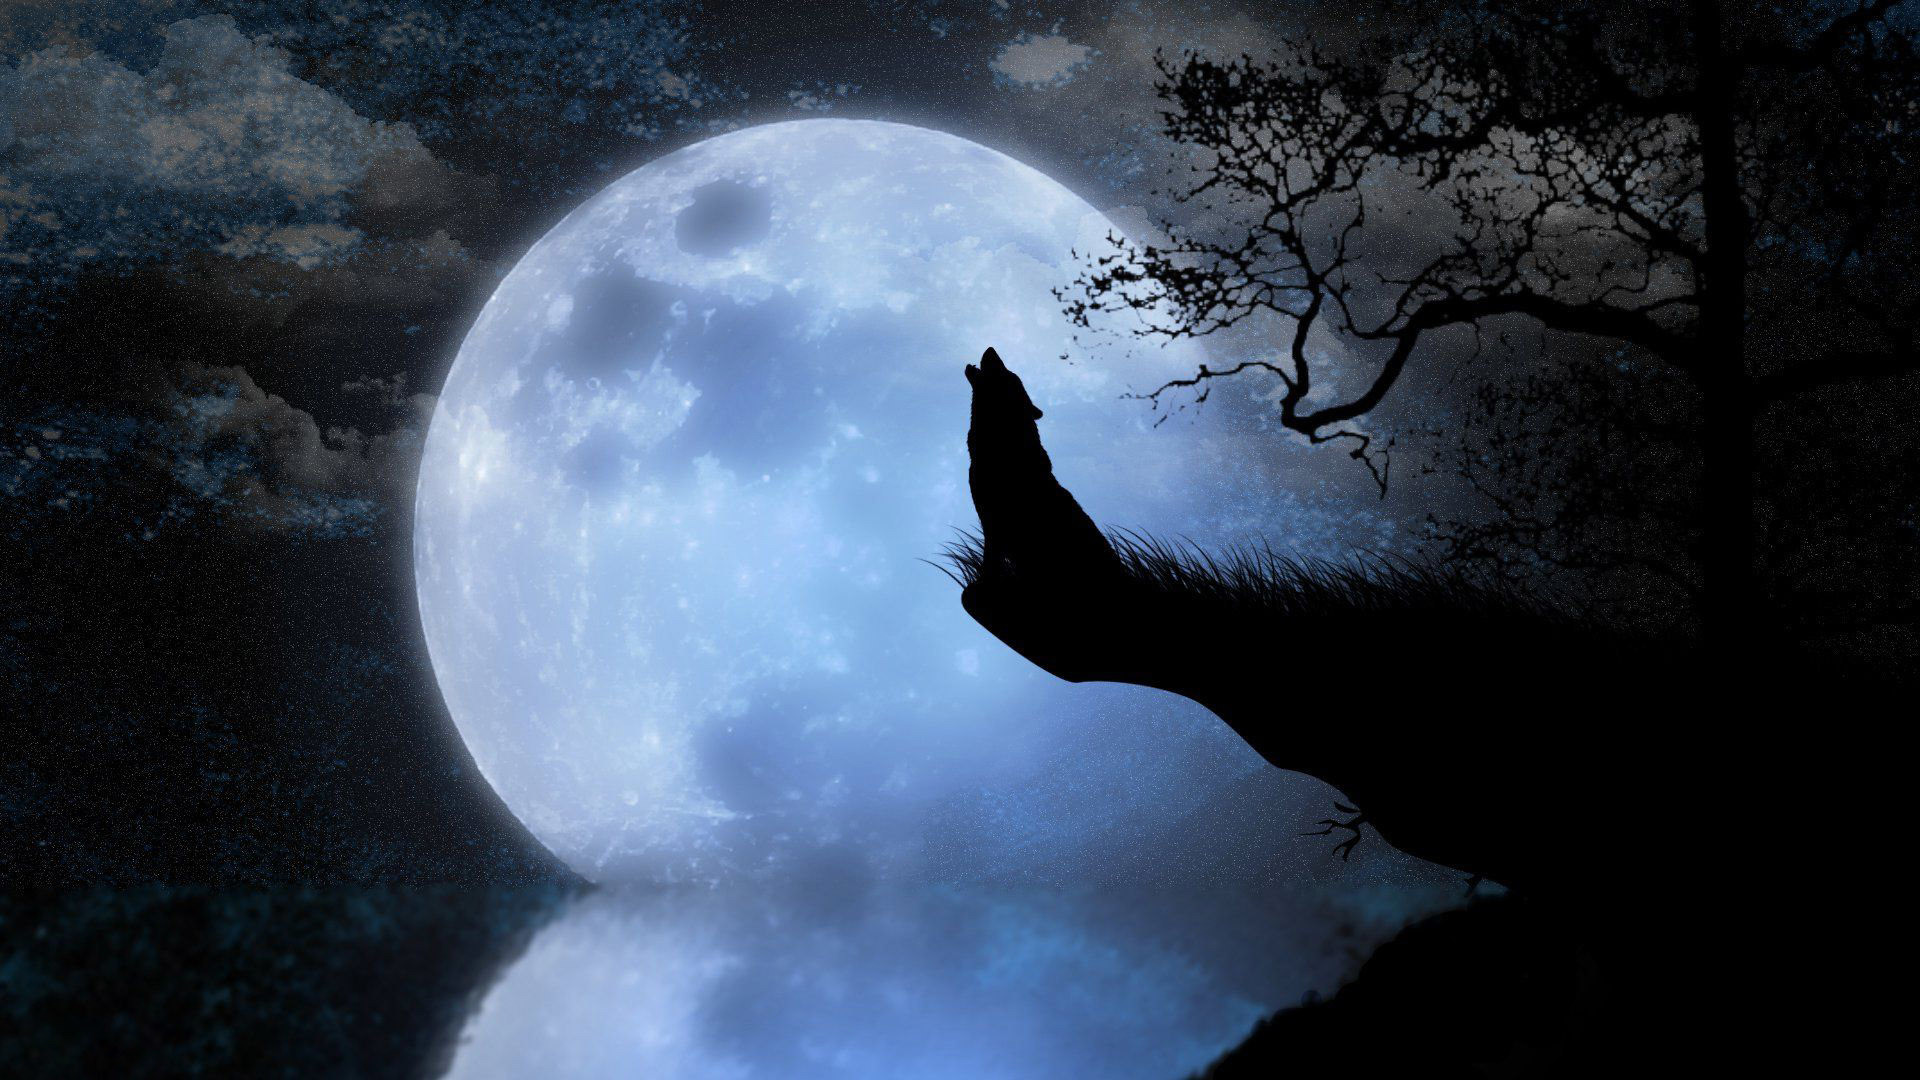 1920x1080 Howling wolf HD Wallpaper